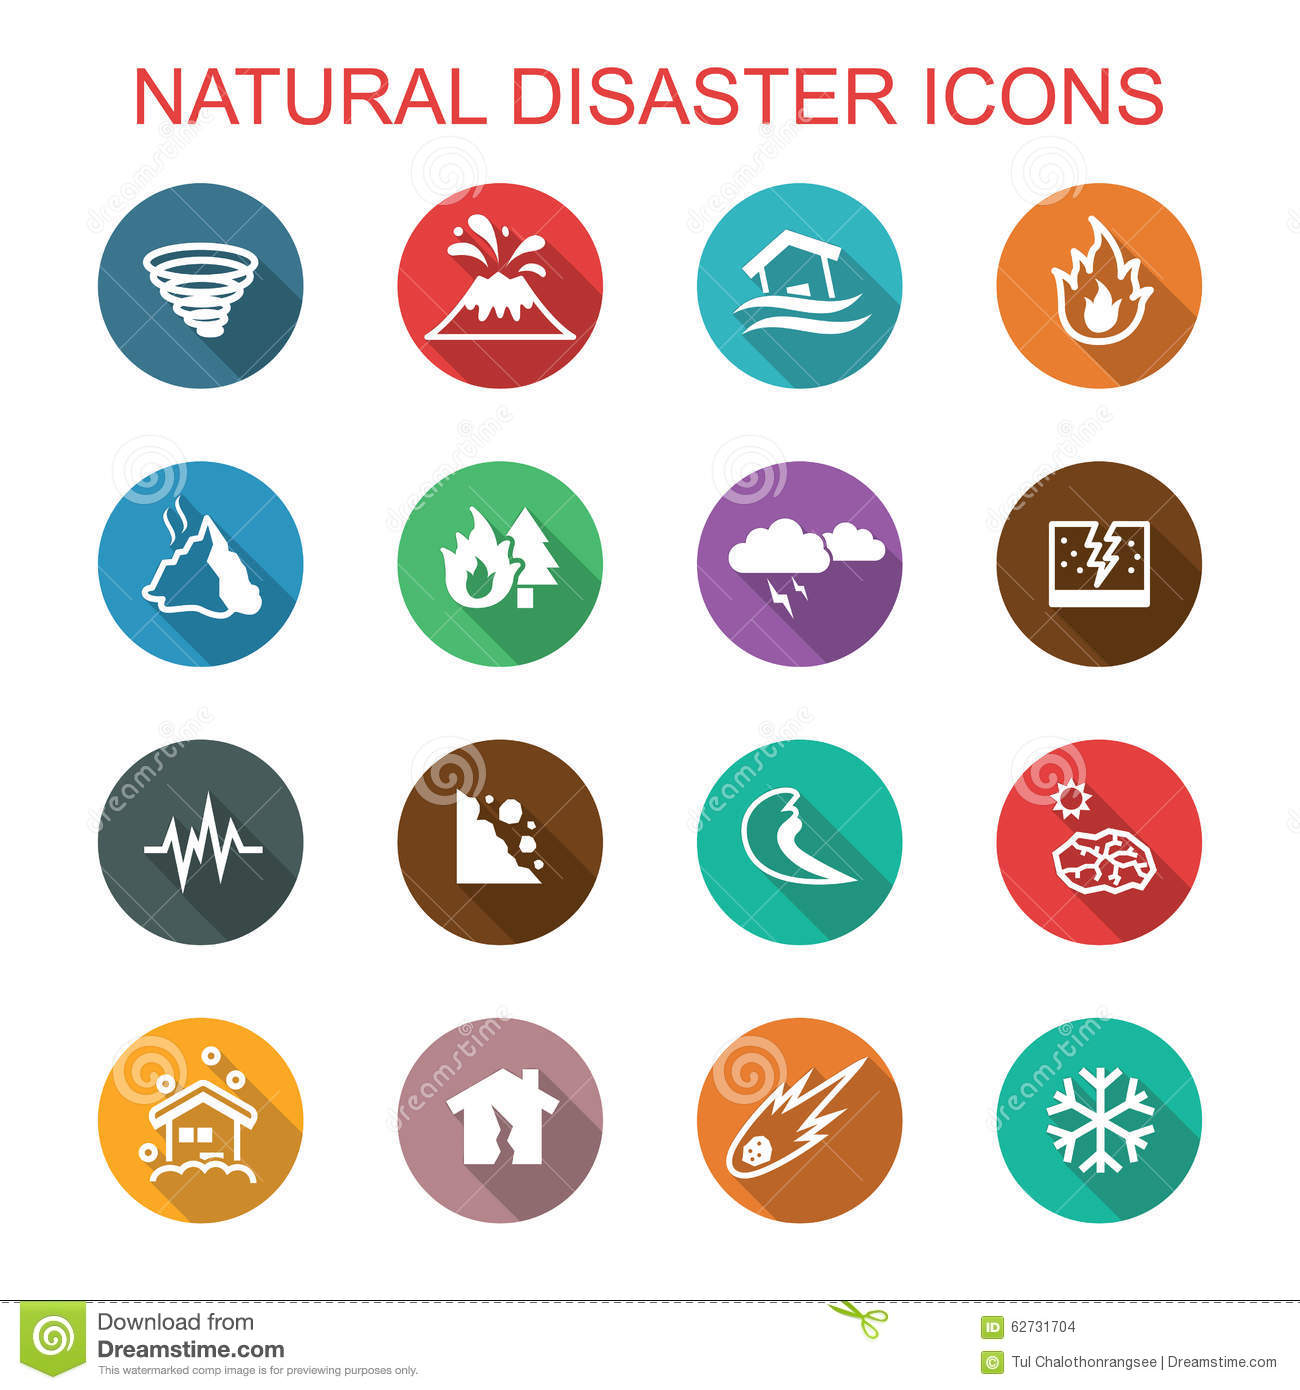 Natural Disaster Images Free Download